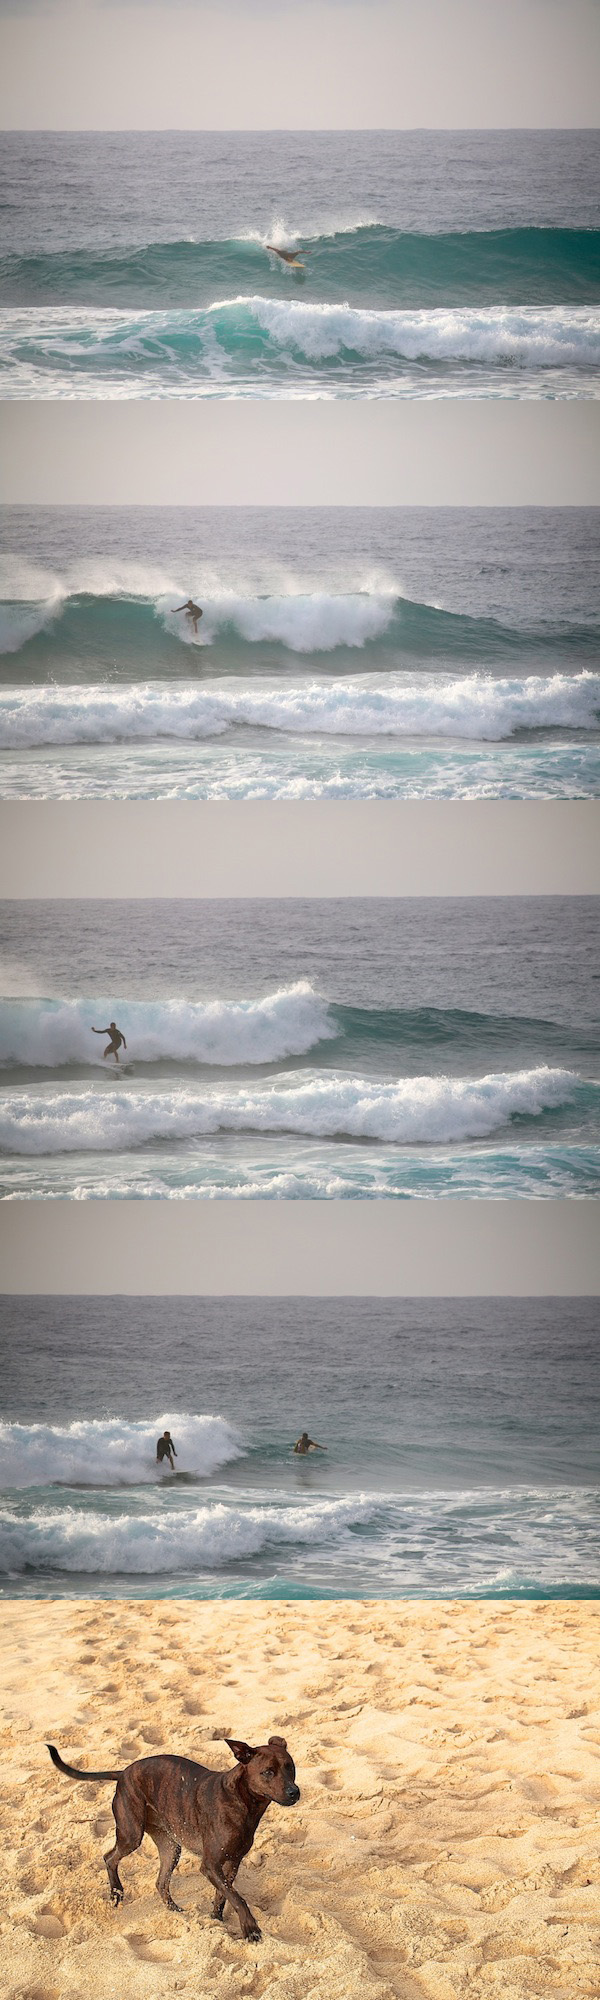 Surf Condition 131202- 8:00 at Sandy Beach, Oahu, Hawaii